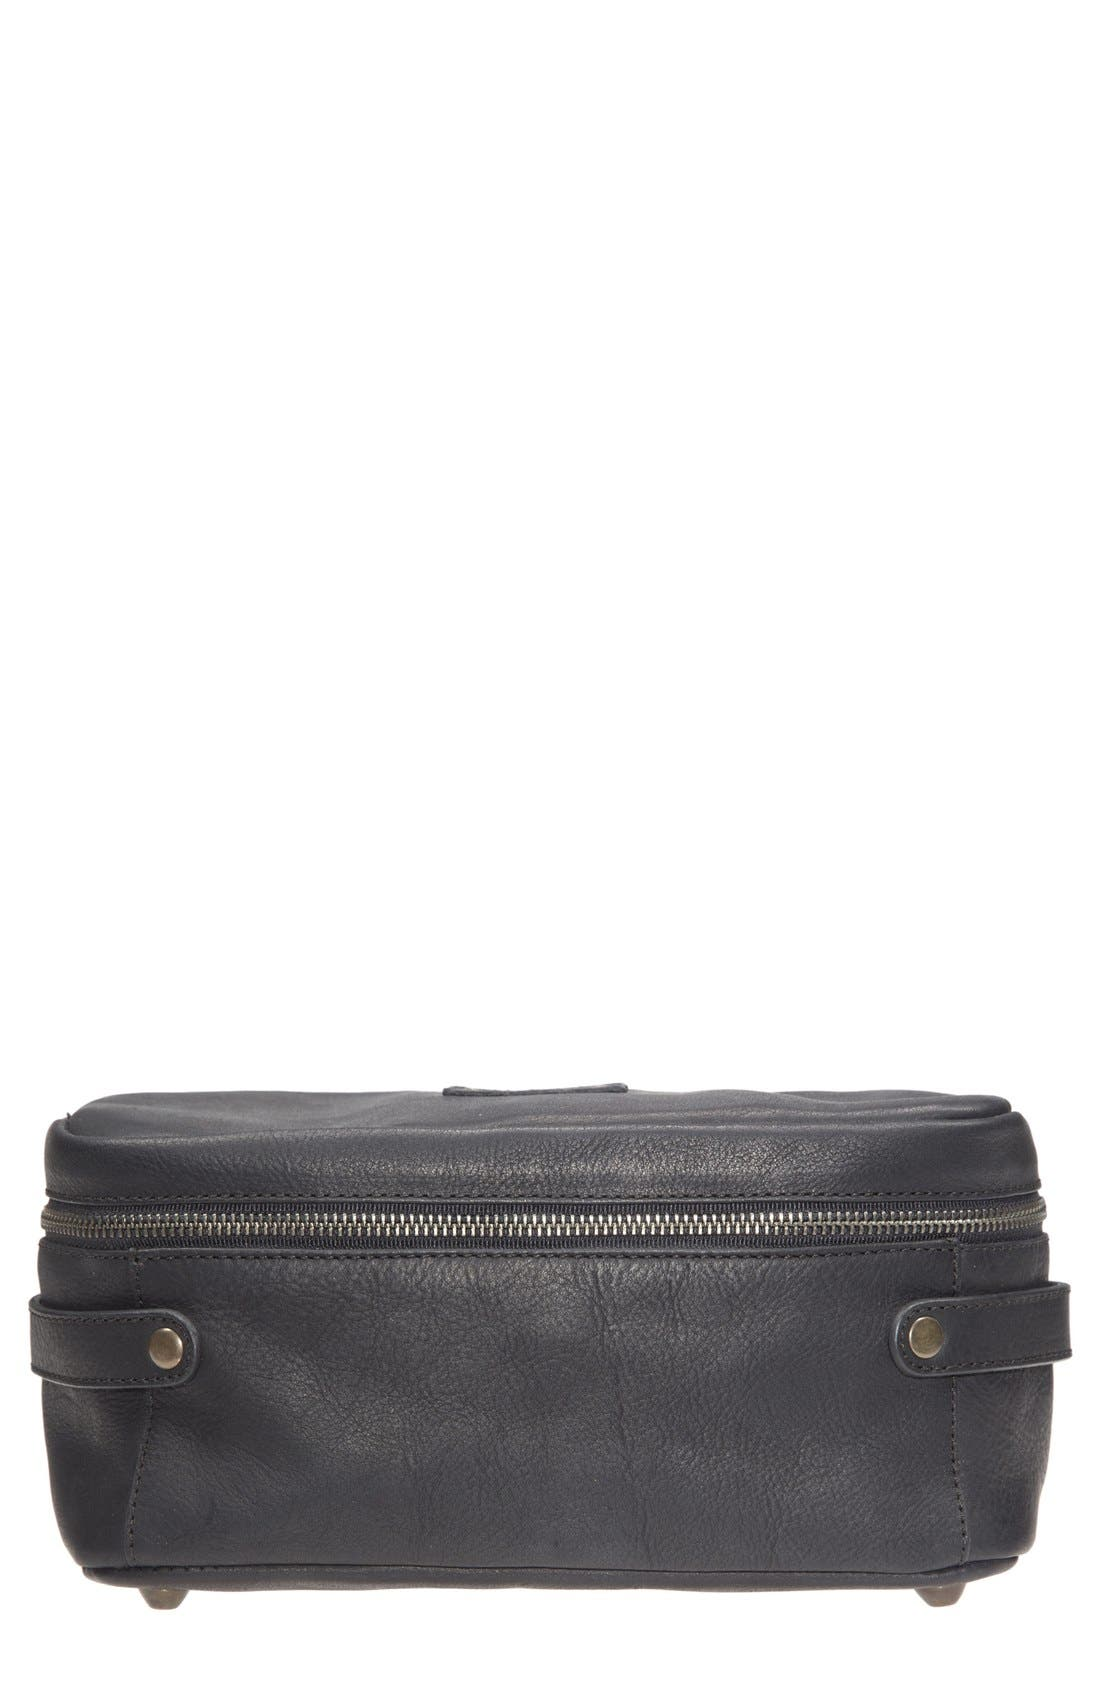 Will Leather Goods 'Desmond' Travel Kit